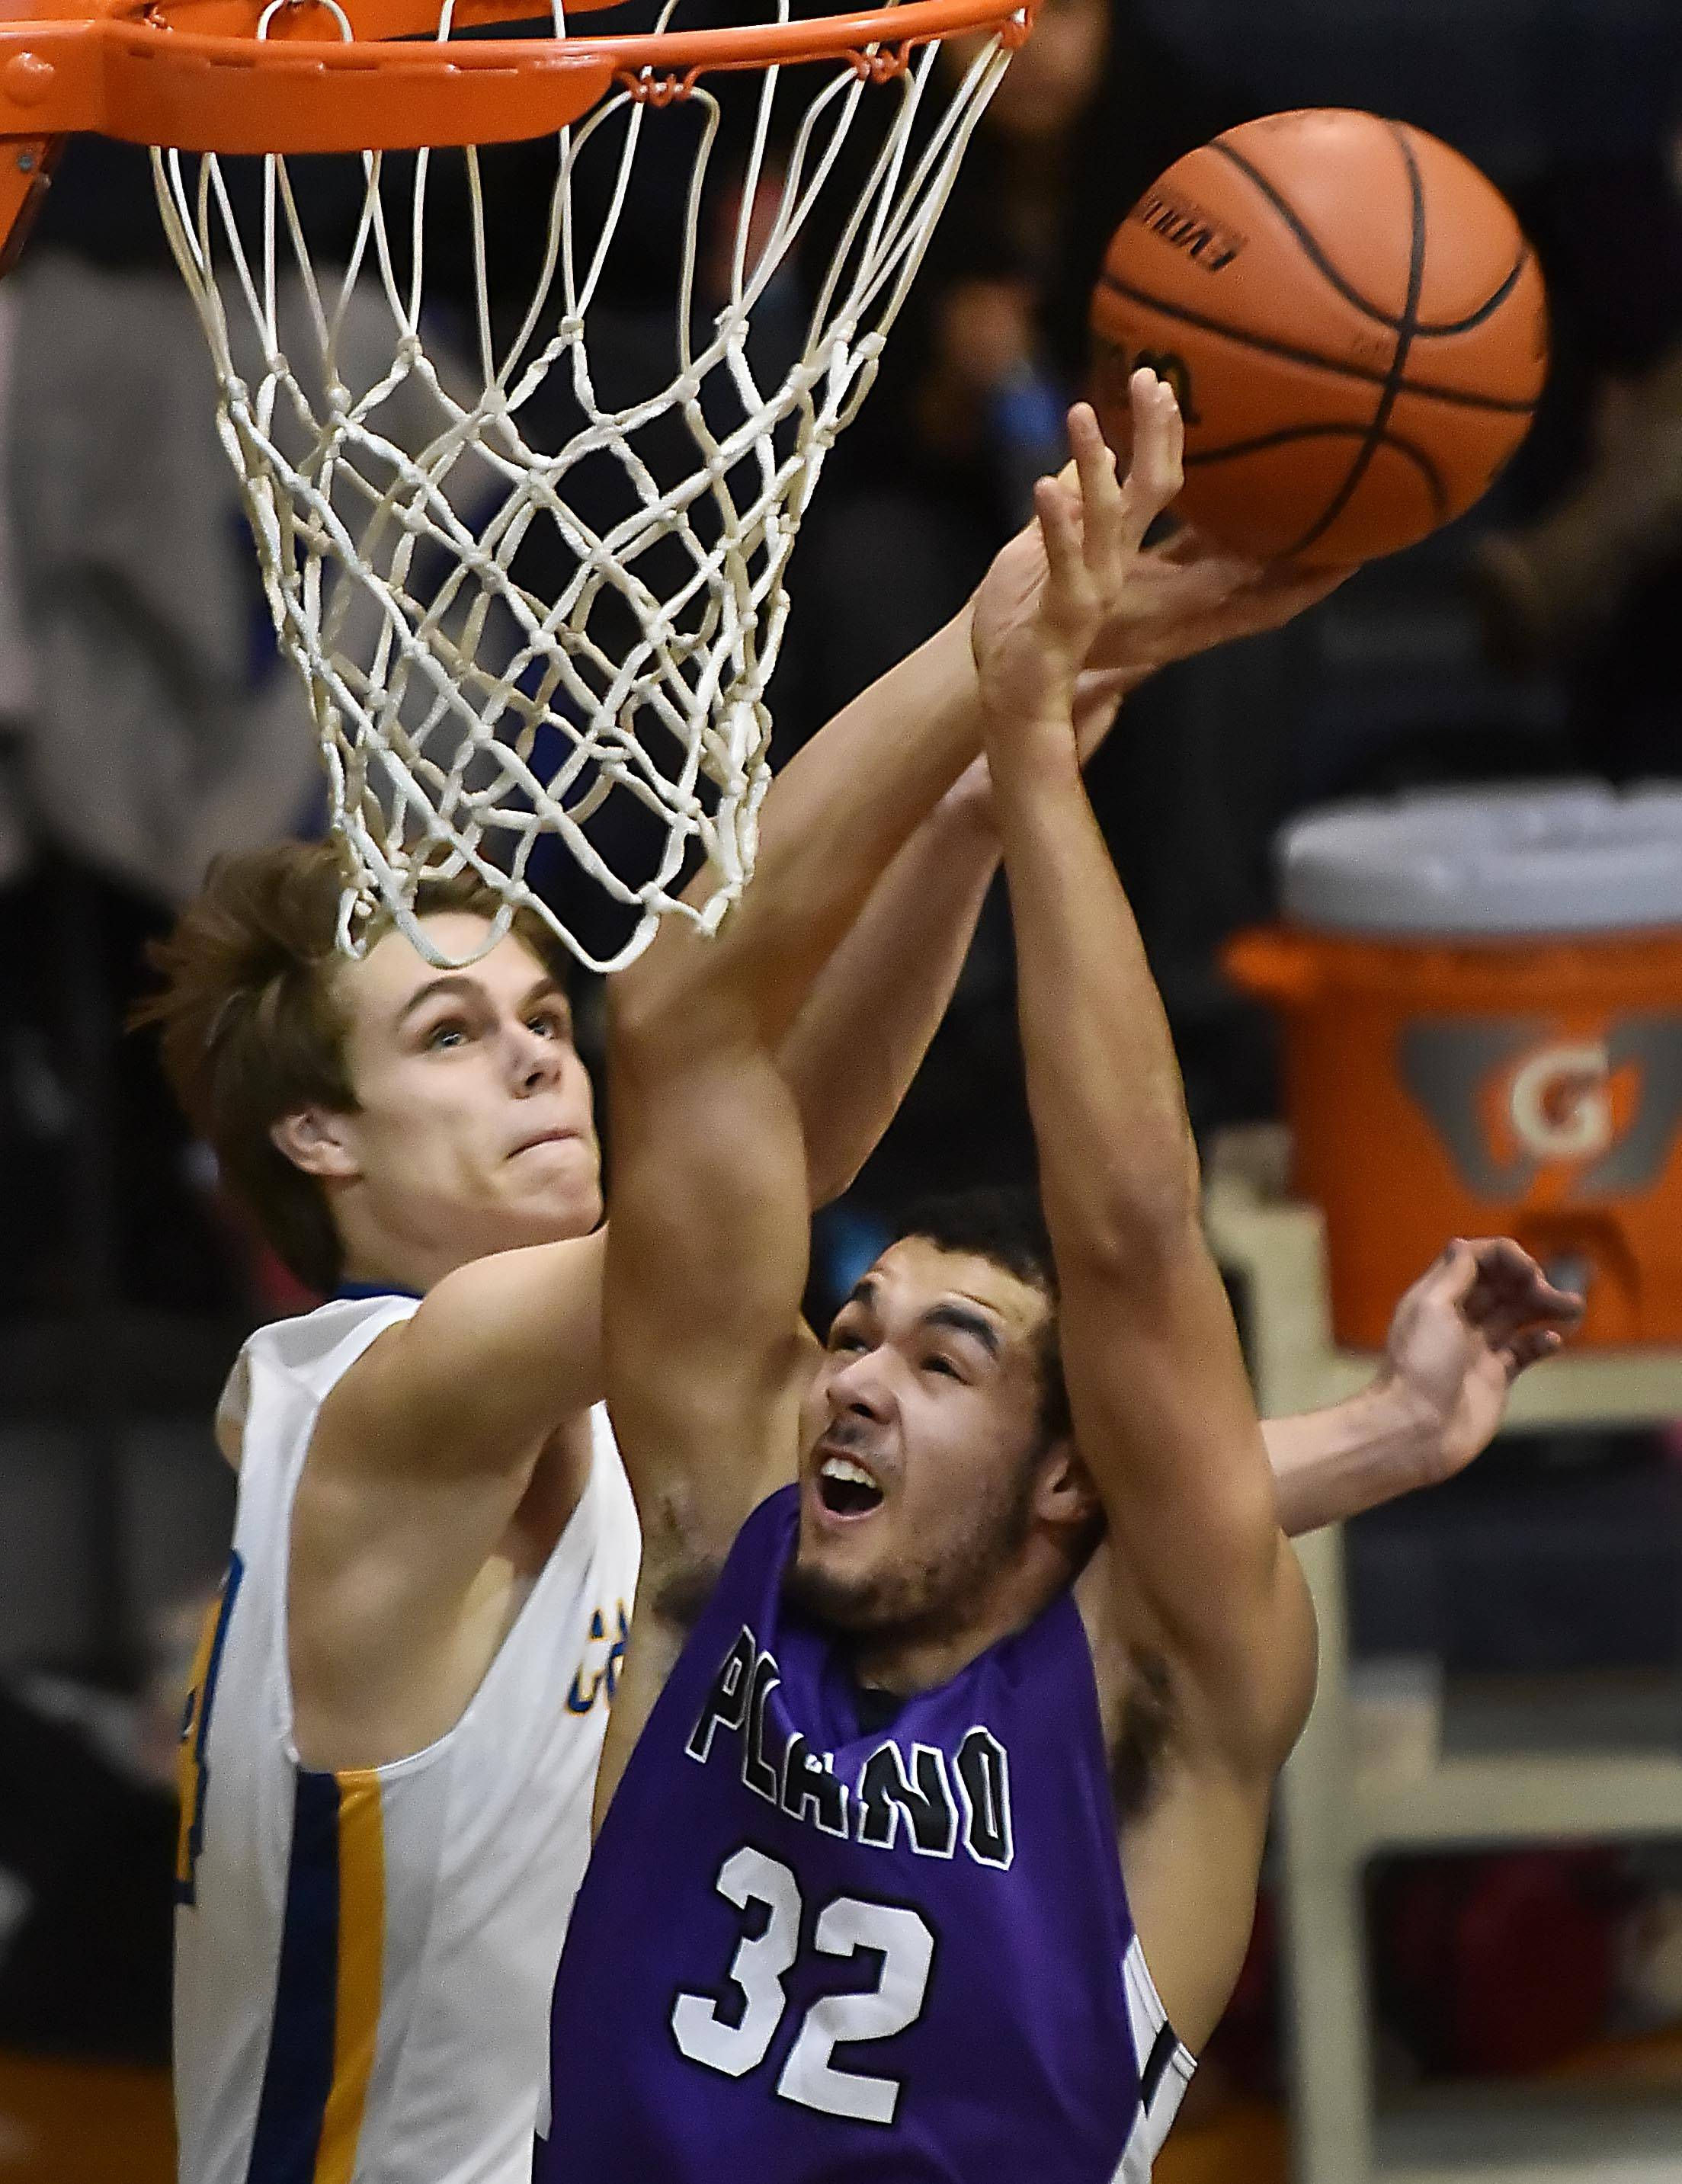 Aurora Central Catholic's Jake Bush blocks a layup by Plano's Marcus McKinney Monday in Aurora.